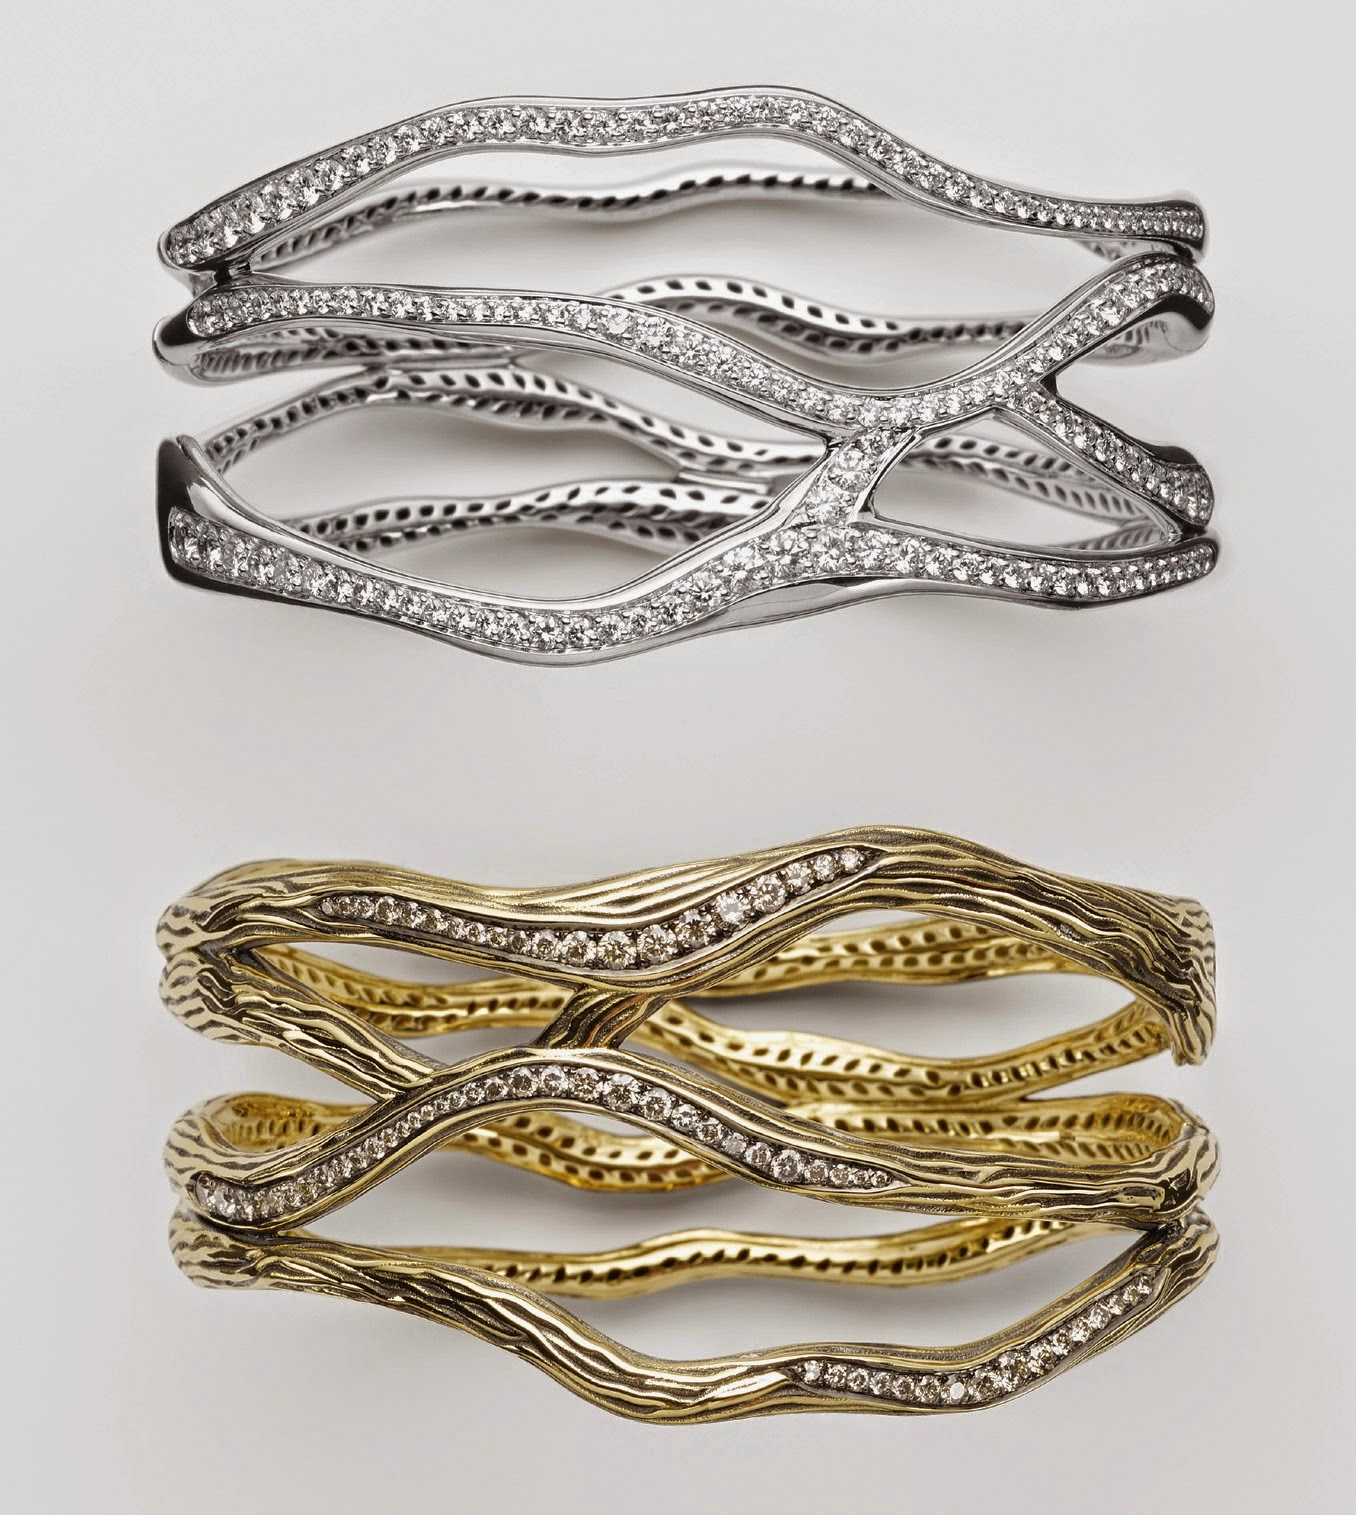 5b6699d349a Antonini Vulcano bracelets in 18k yellow gold, white gold, black rhodium, white  diamonds and champagne diamonds.